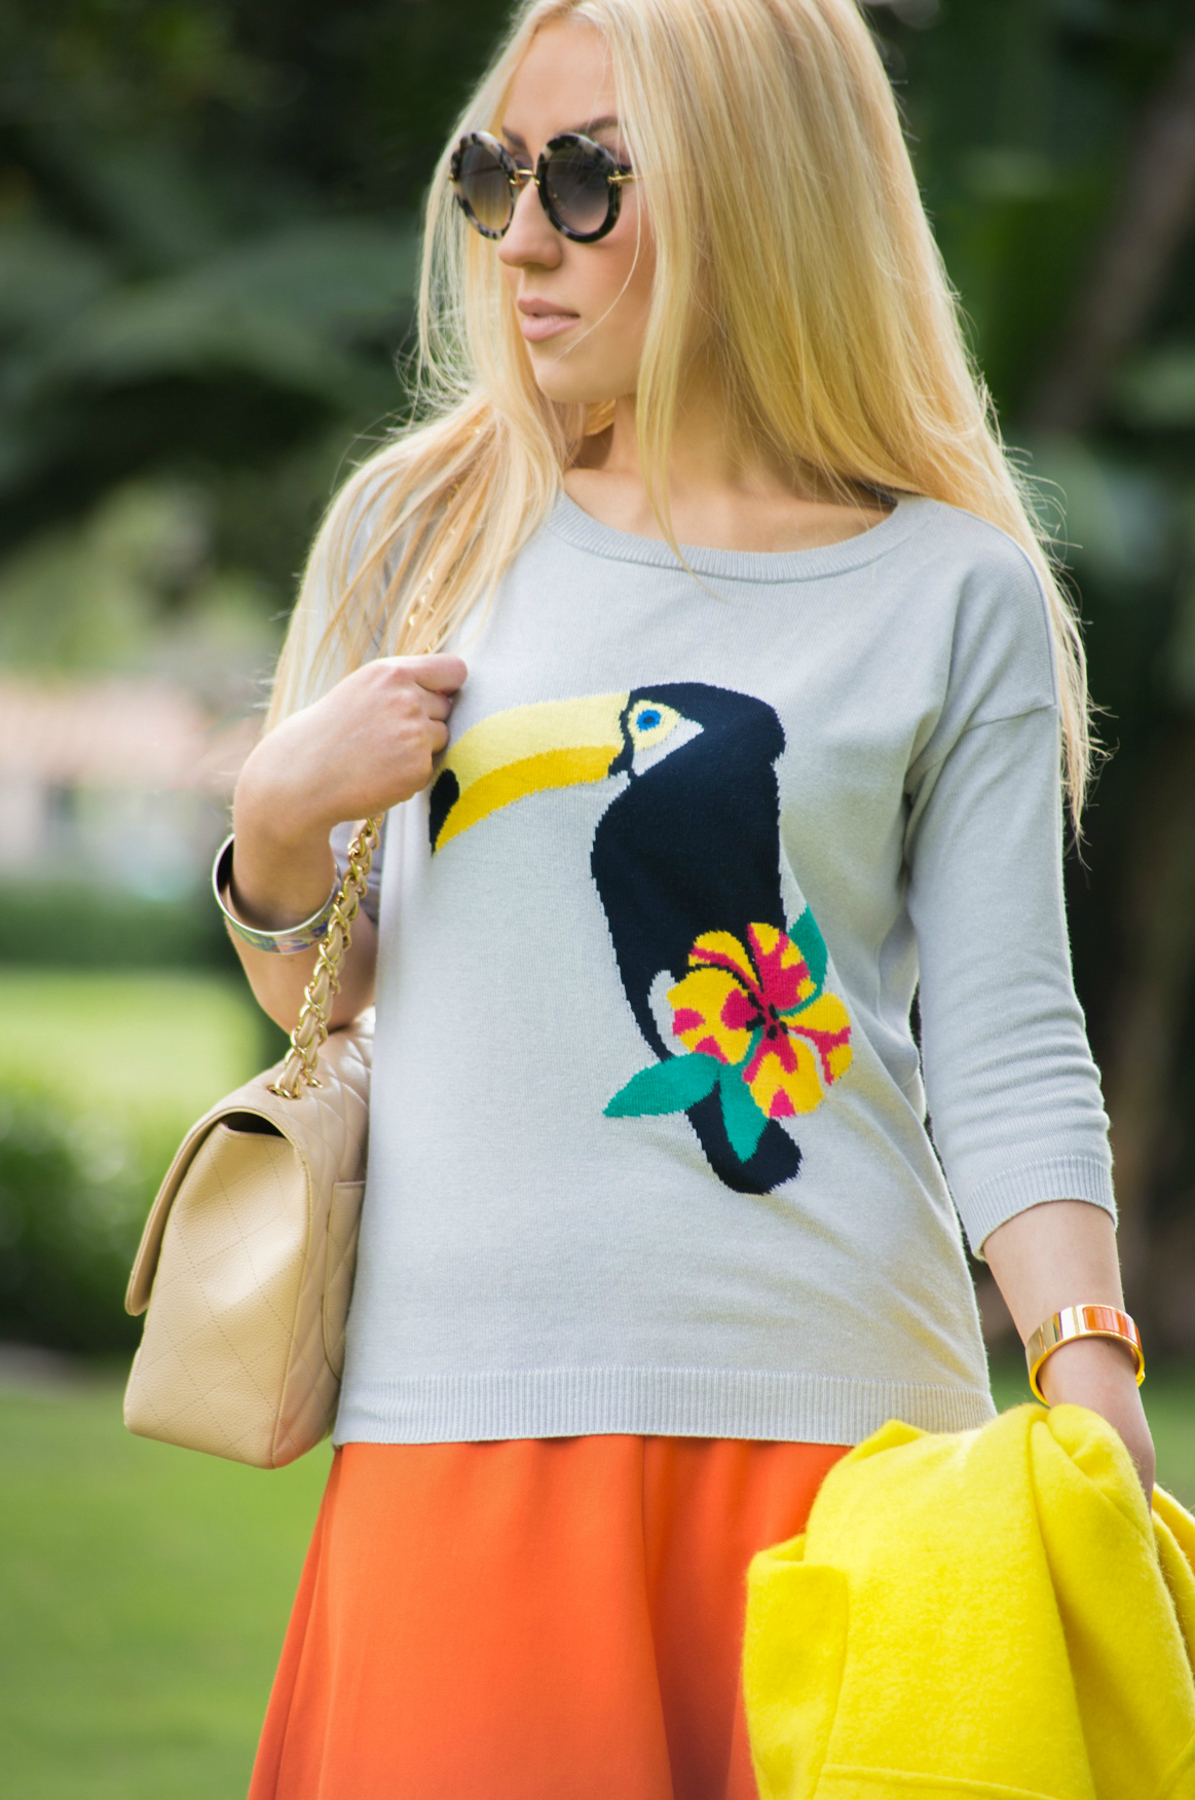 Toucan Sweater,intarsia sweater,yellow coat